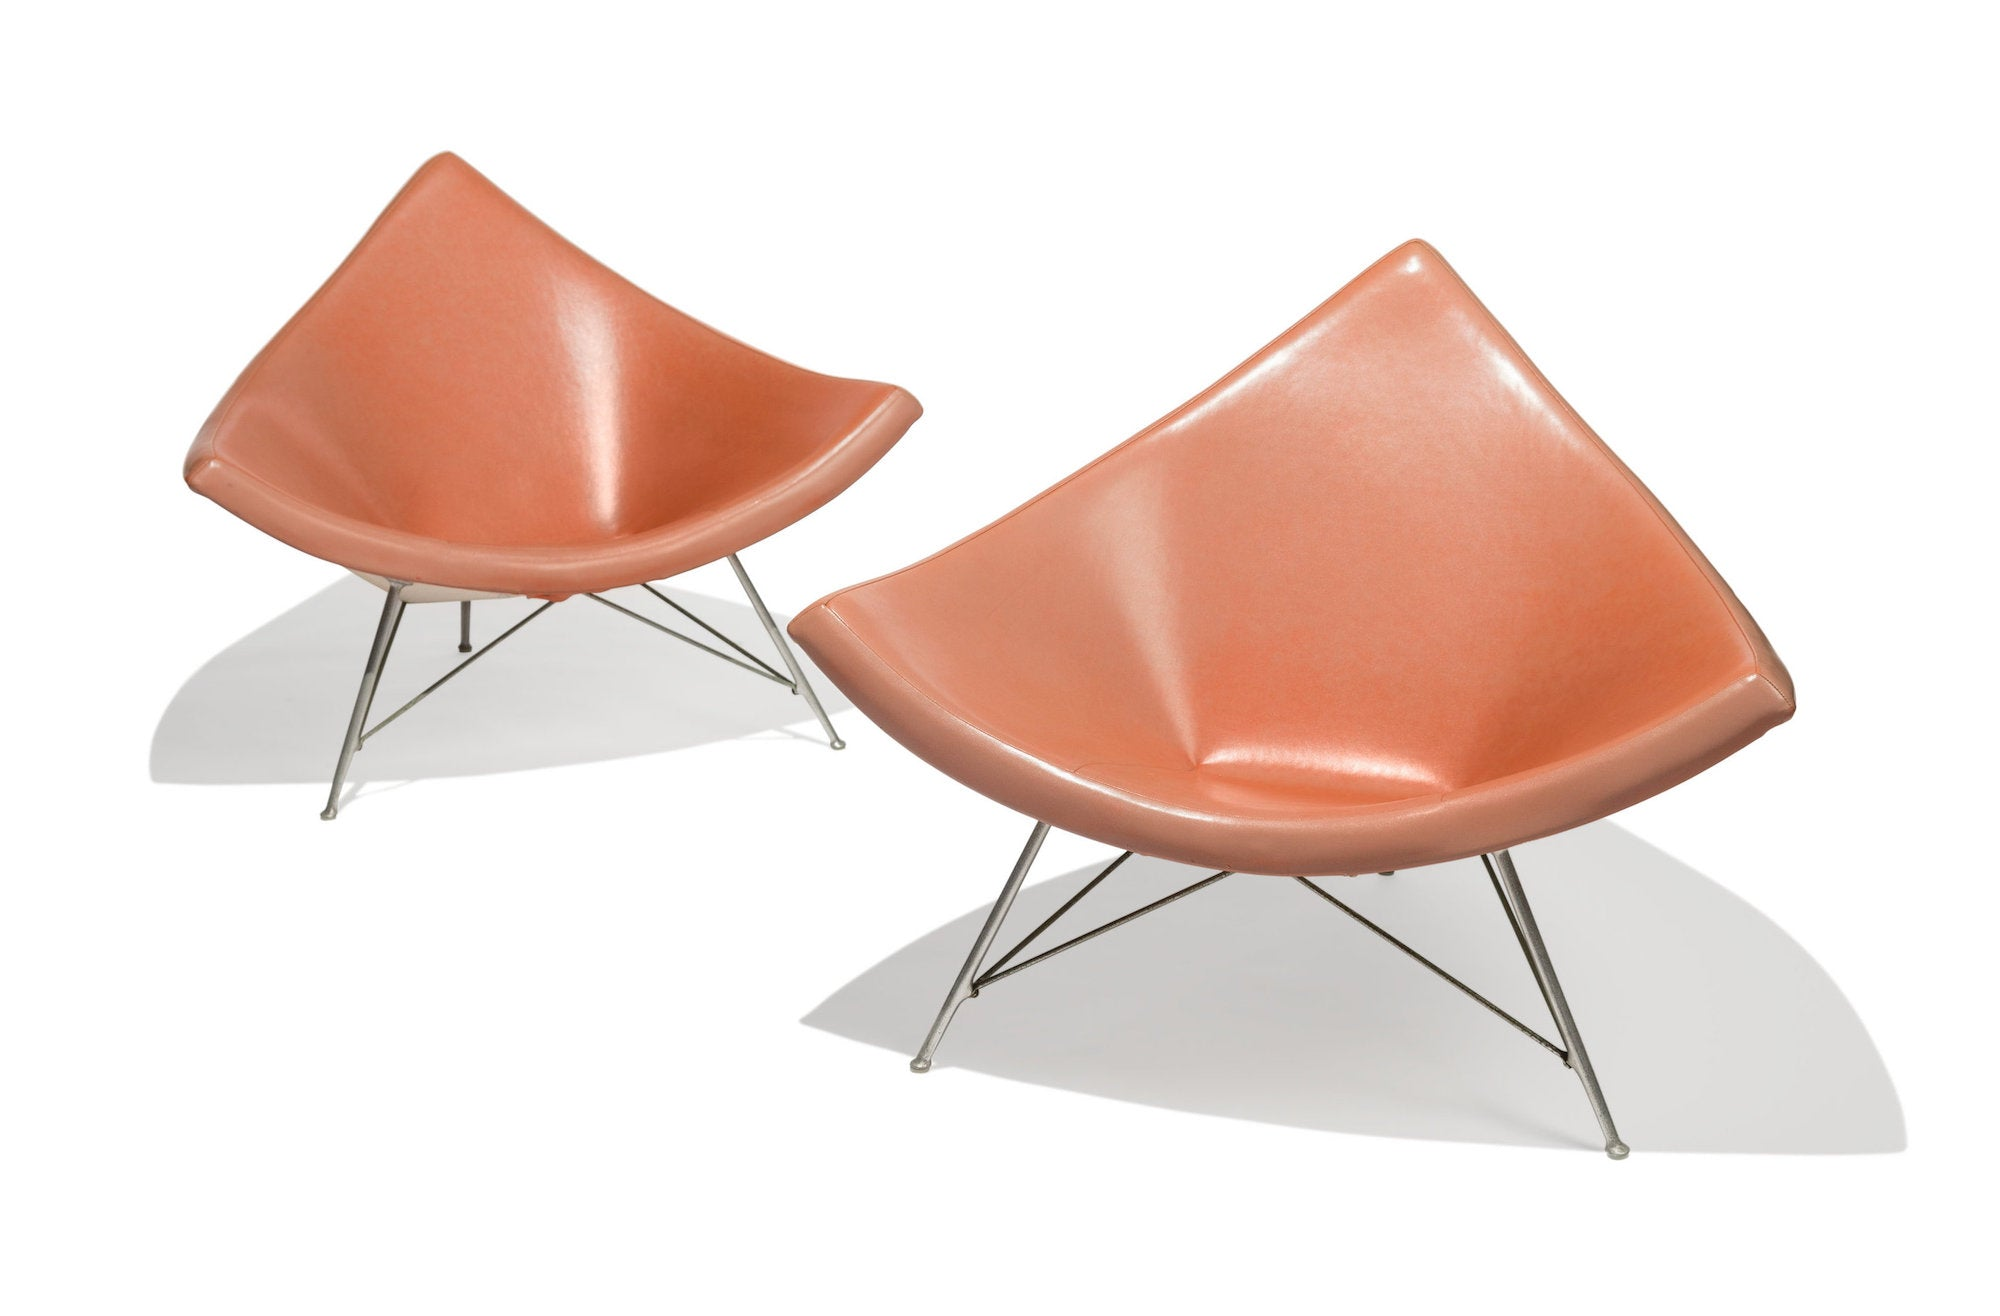 Pair of Coconut Lounge Chairs by George Nelson from Craig Ellwood's Hunt House. Photo © Heritage Auctions